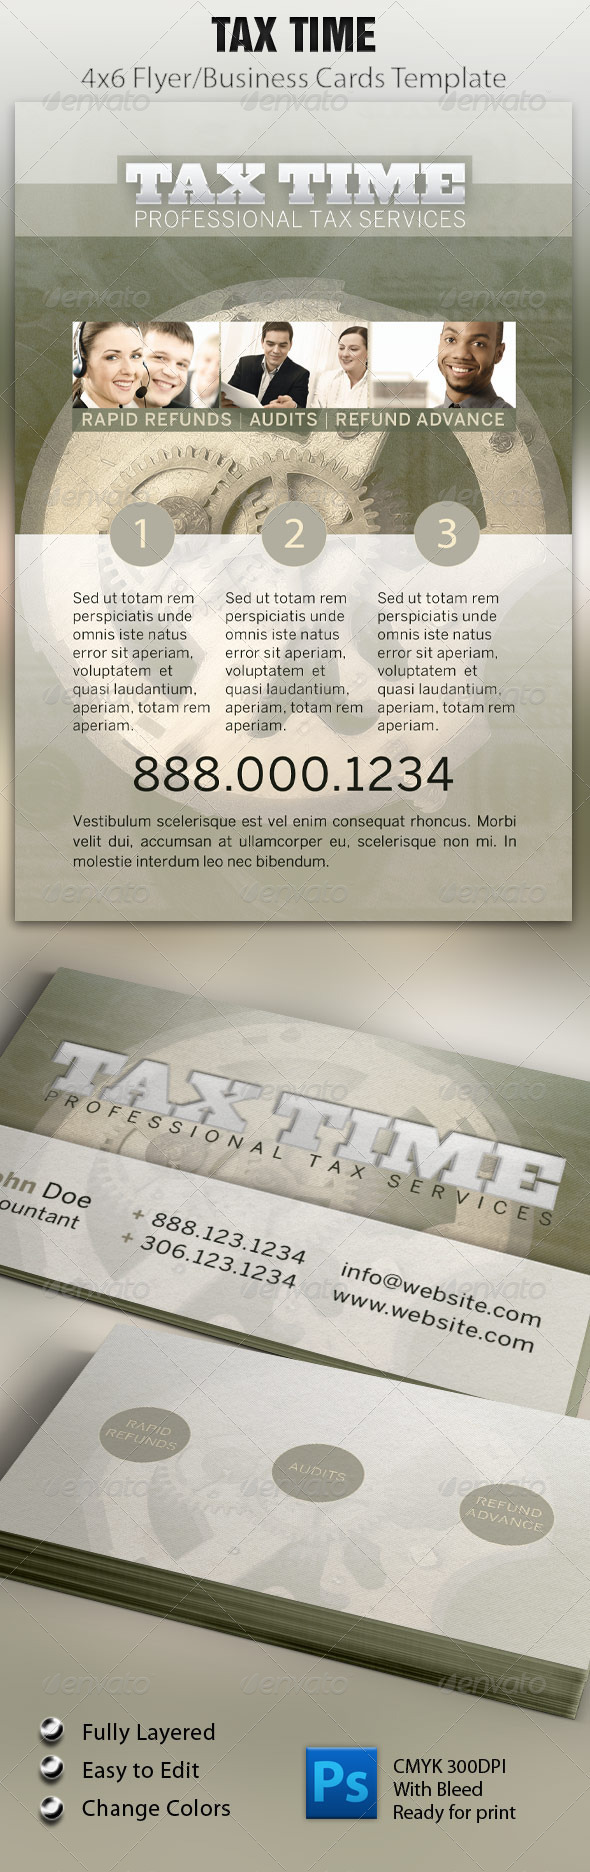 Tax Time Flyer & Business Card - Corporate Flyers